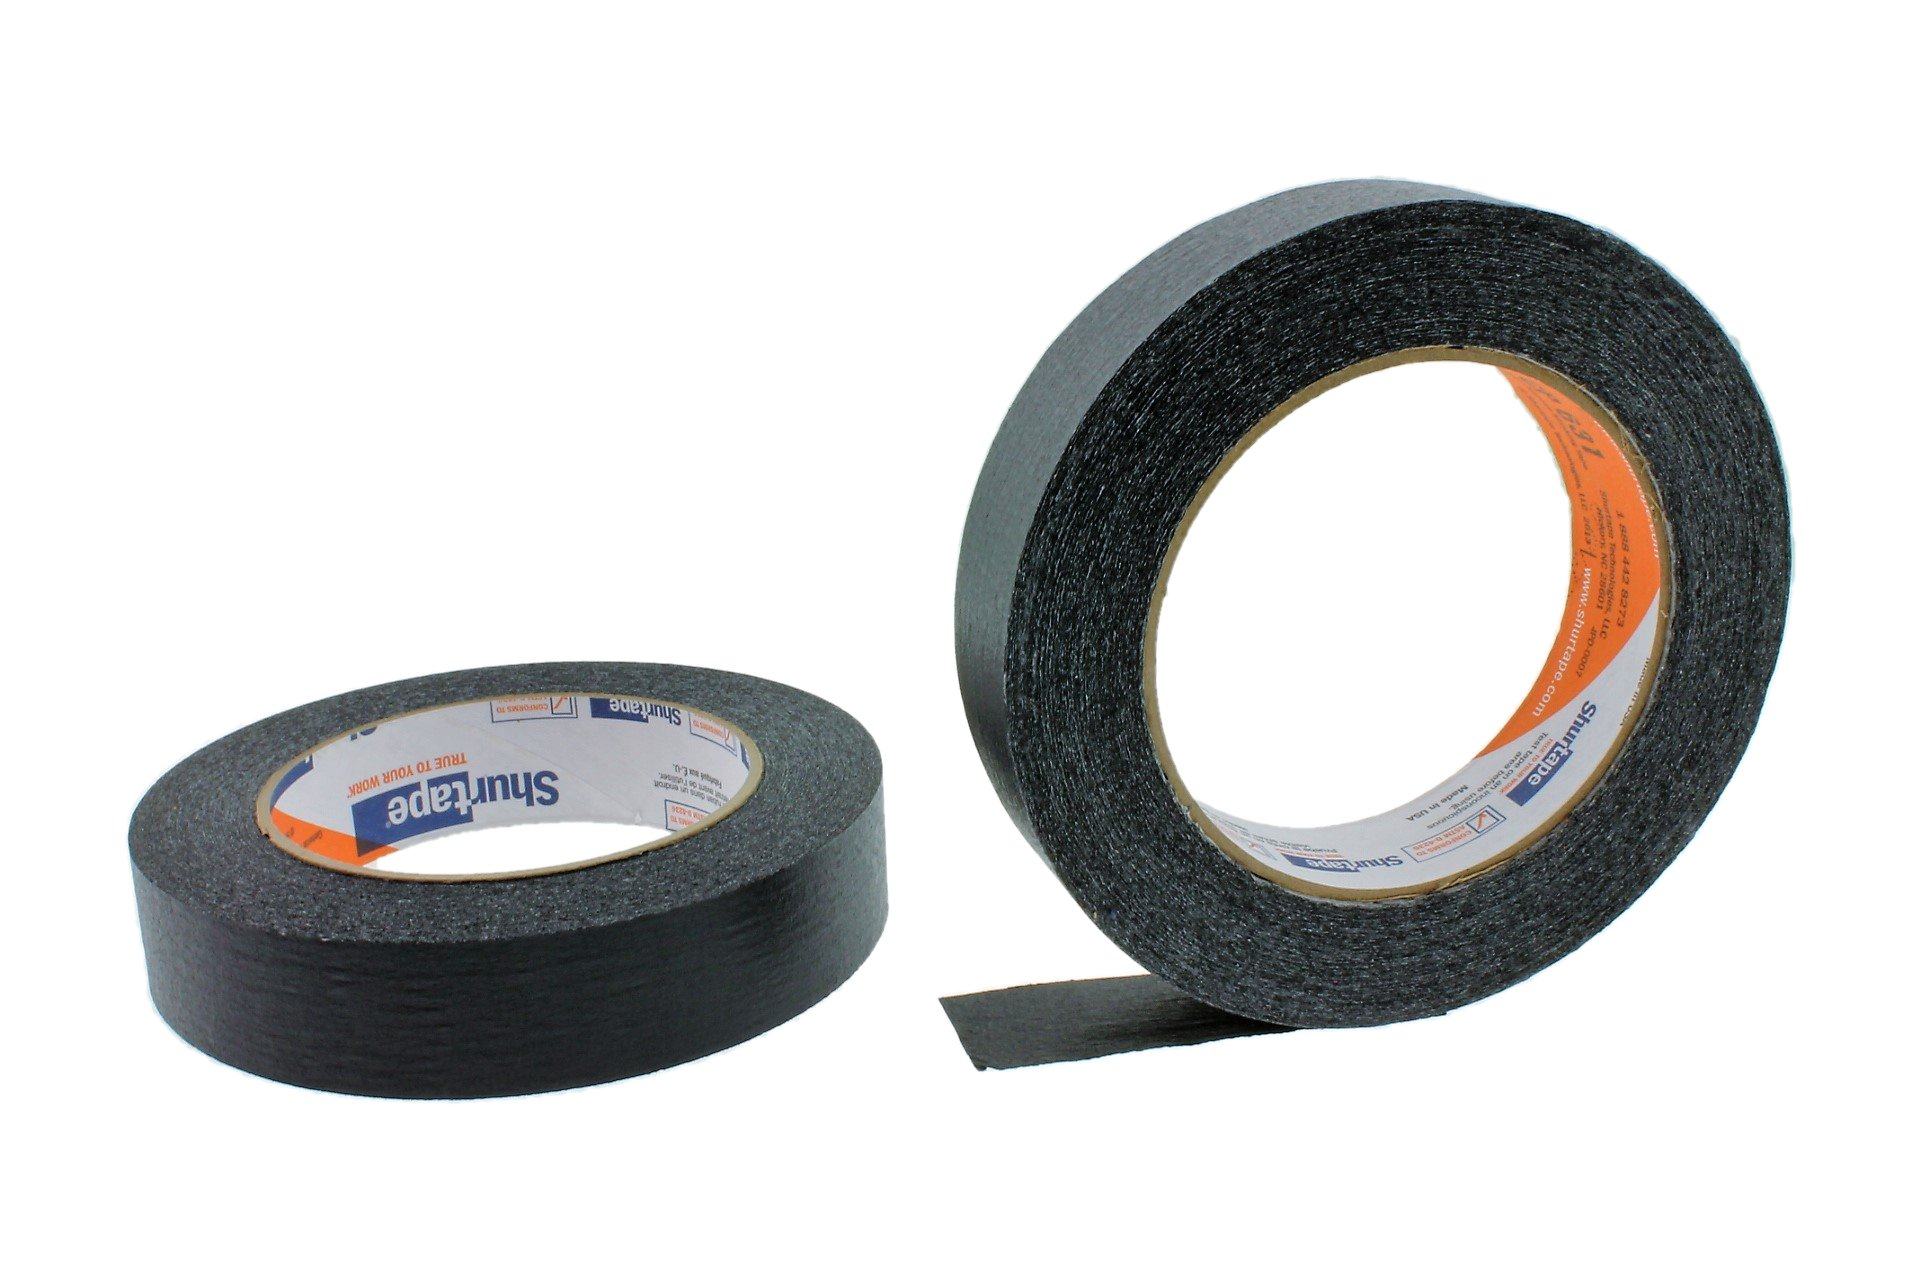 2pk of 1'' in x 60yd Black Masking Tape Extra Sticky PRO Grade High Stick Special Project Painters Tape Painting Trim Arts Crafts School Home Office 21 Days 24MM x 55M .94 inch